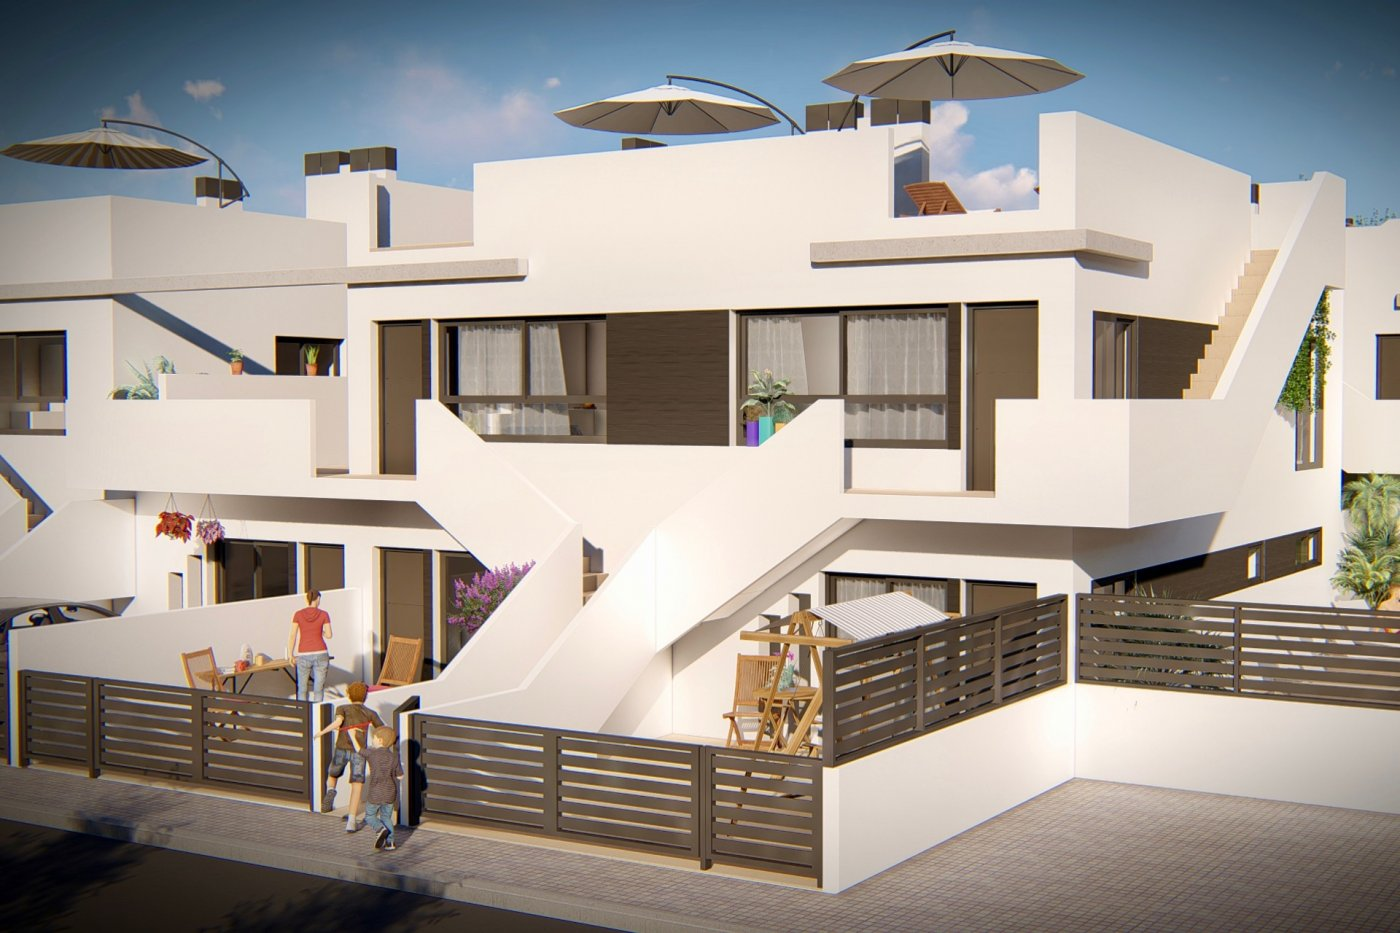 Gallery Image 1 of New build first floor apartment with 55 m2 solarium and outdoor kitchen